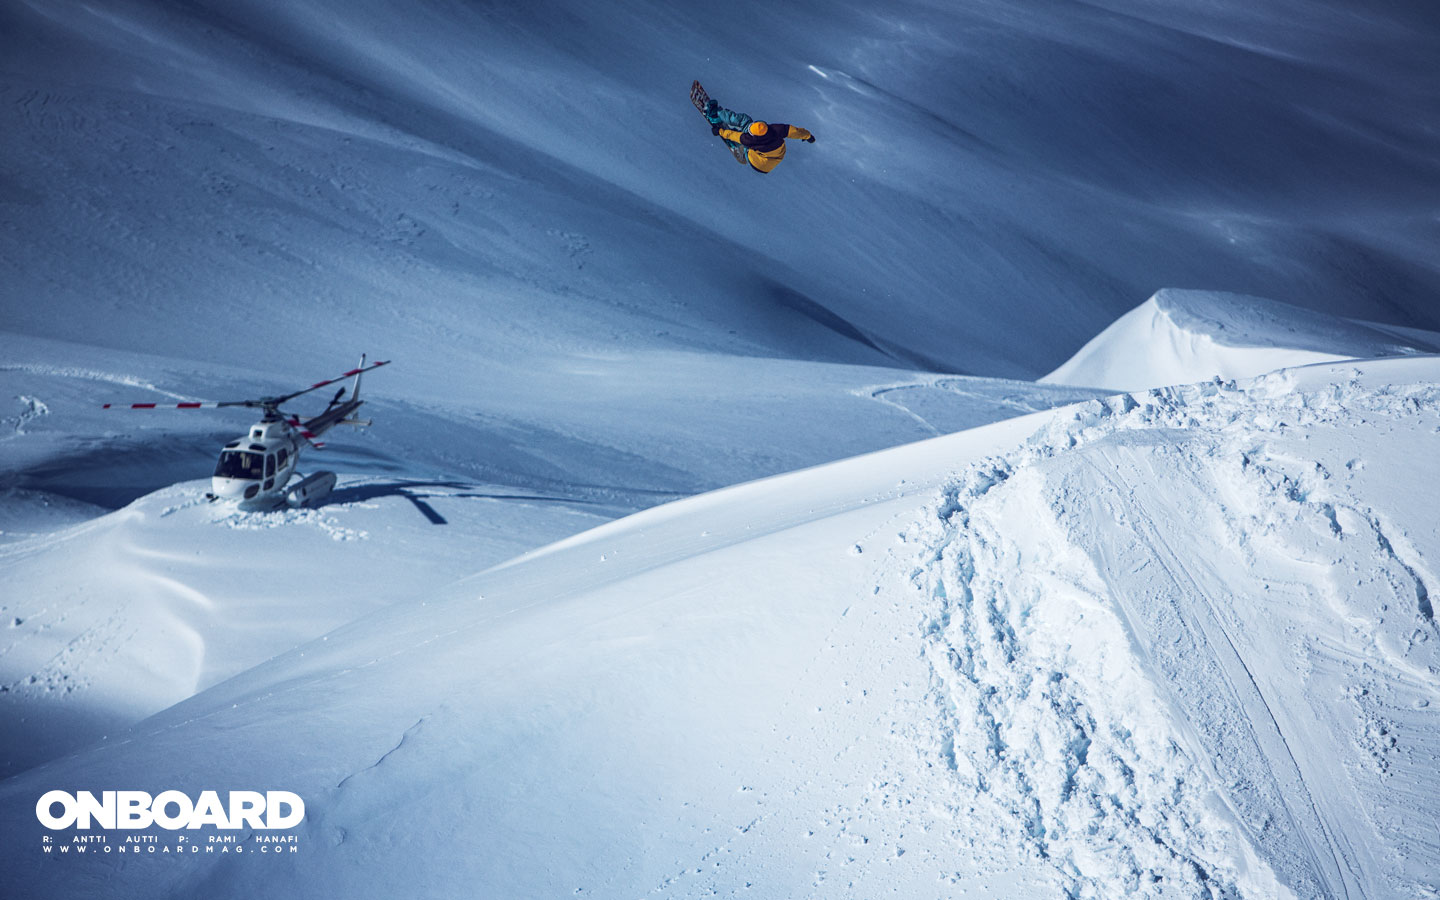 1440x900 - Snowboarding Wallpapers 16